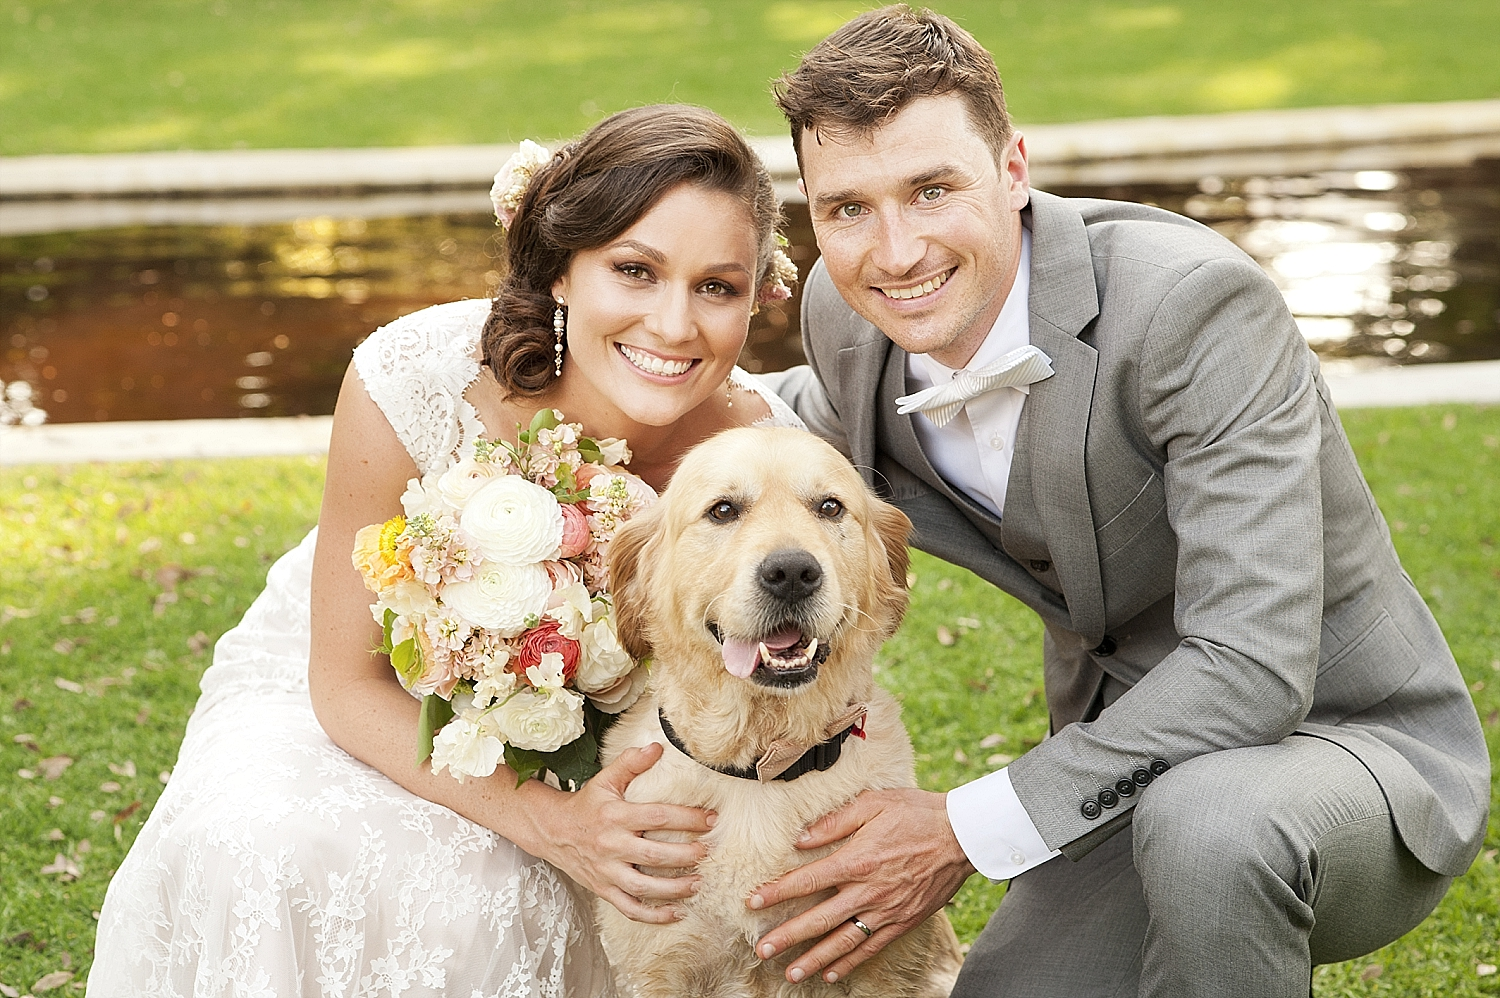 63 bride and groom with dog wedding photography perth 079.jpg